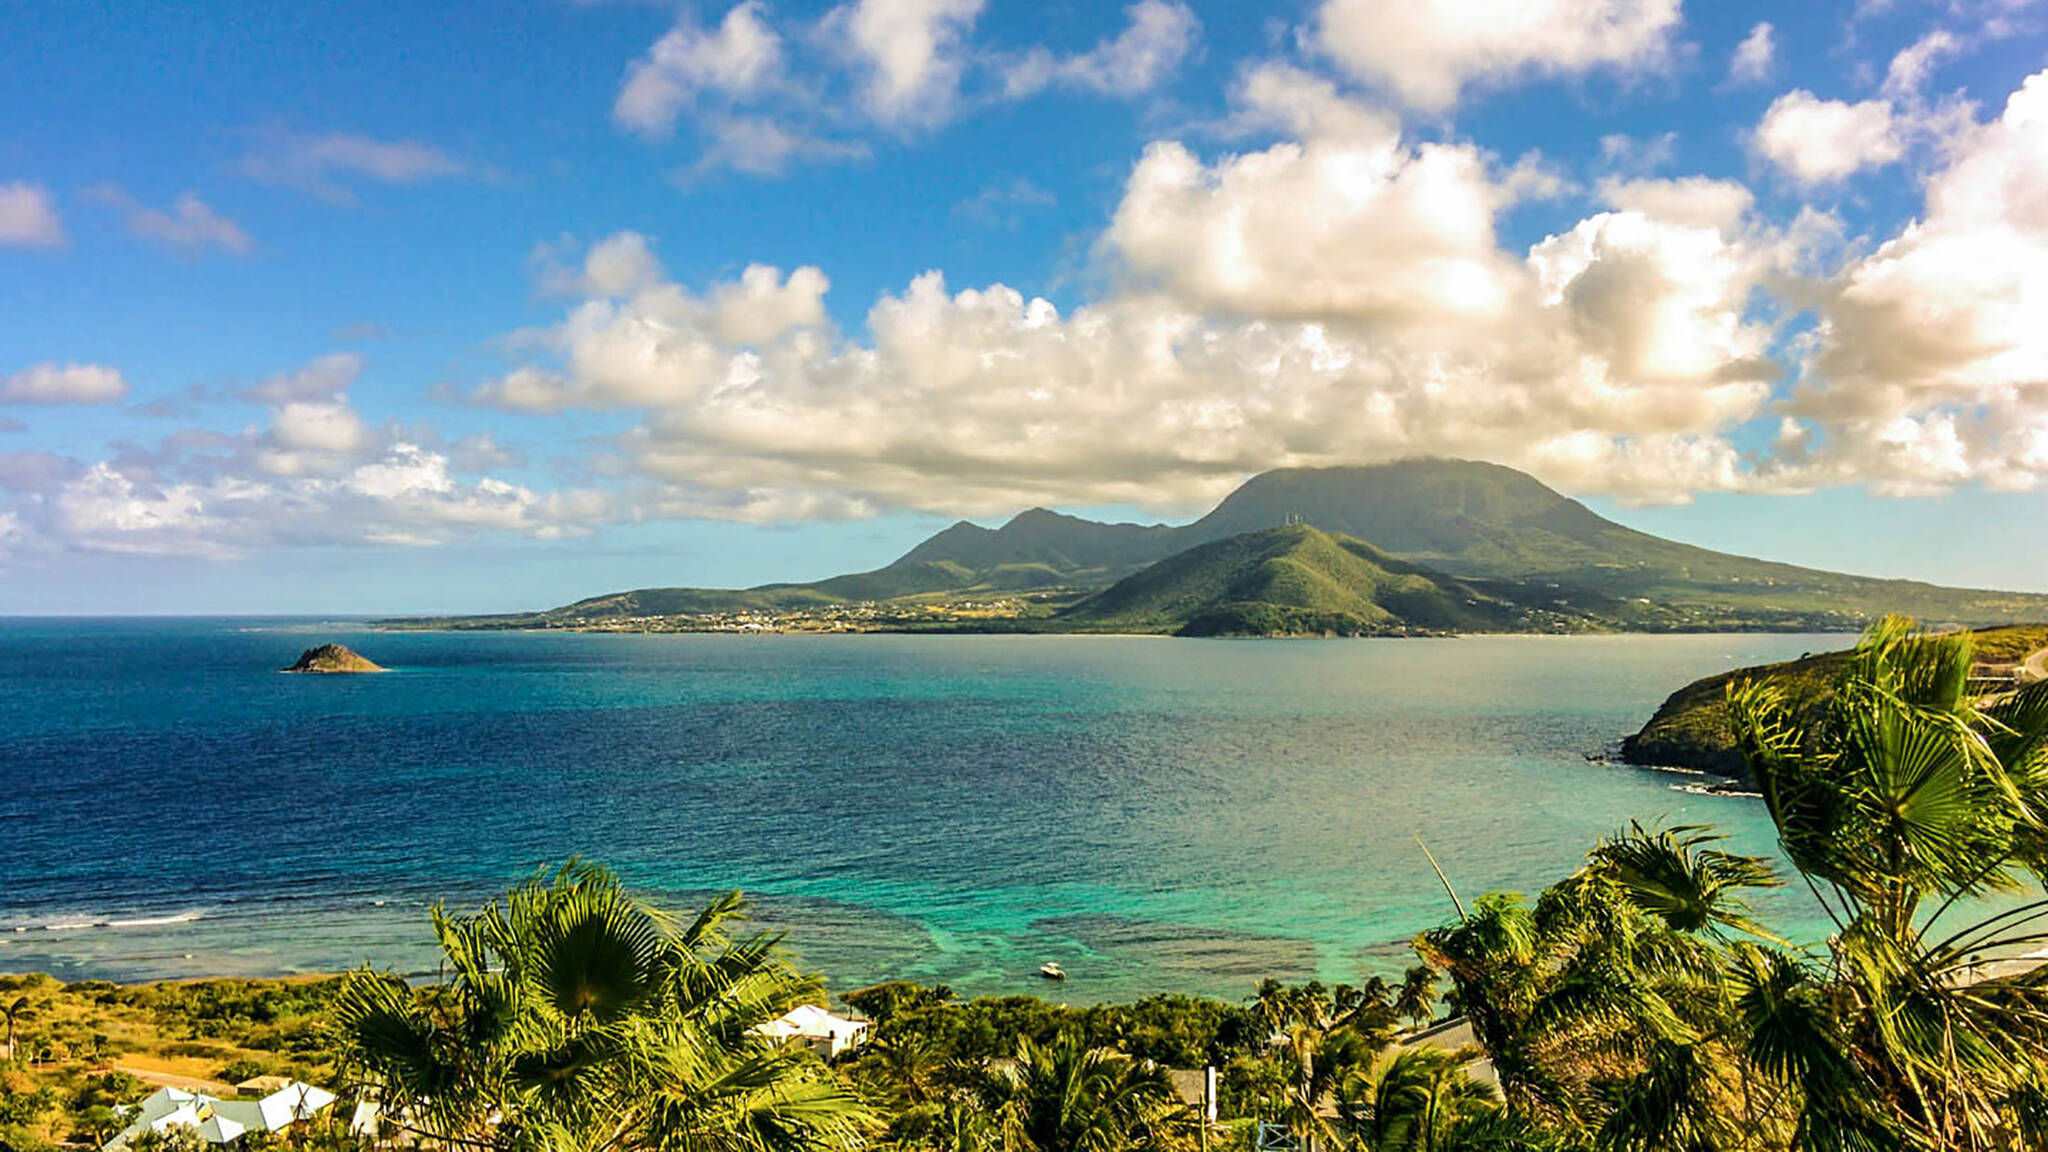 The Nevisian Luxury Resort project is located in Nevis island in the Lesser Antilles designed by the architecture studio Danny Forster & Architecture